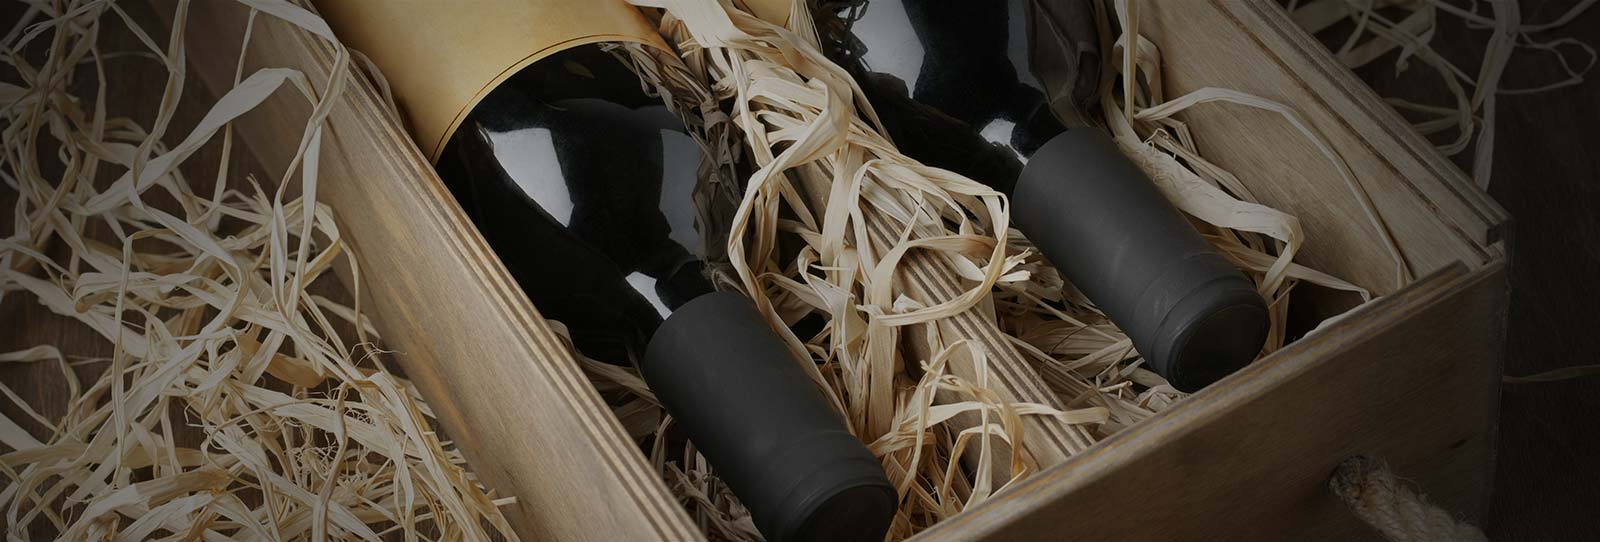 Protect Your Wine Gift With Beautiful Wooden Wine Boxes